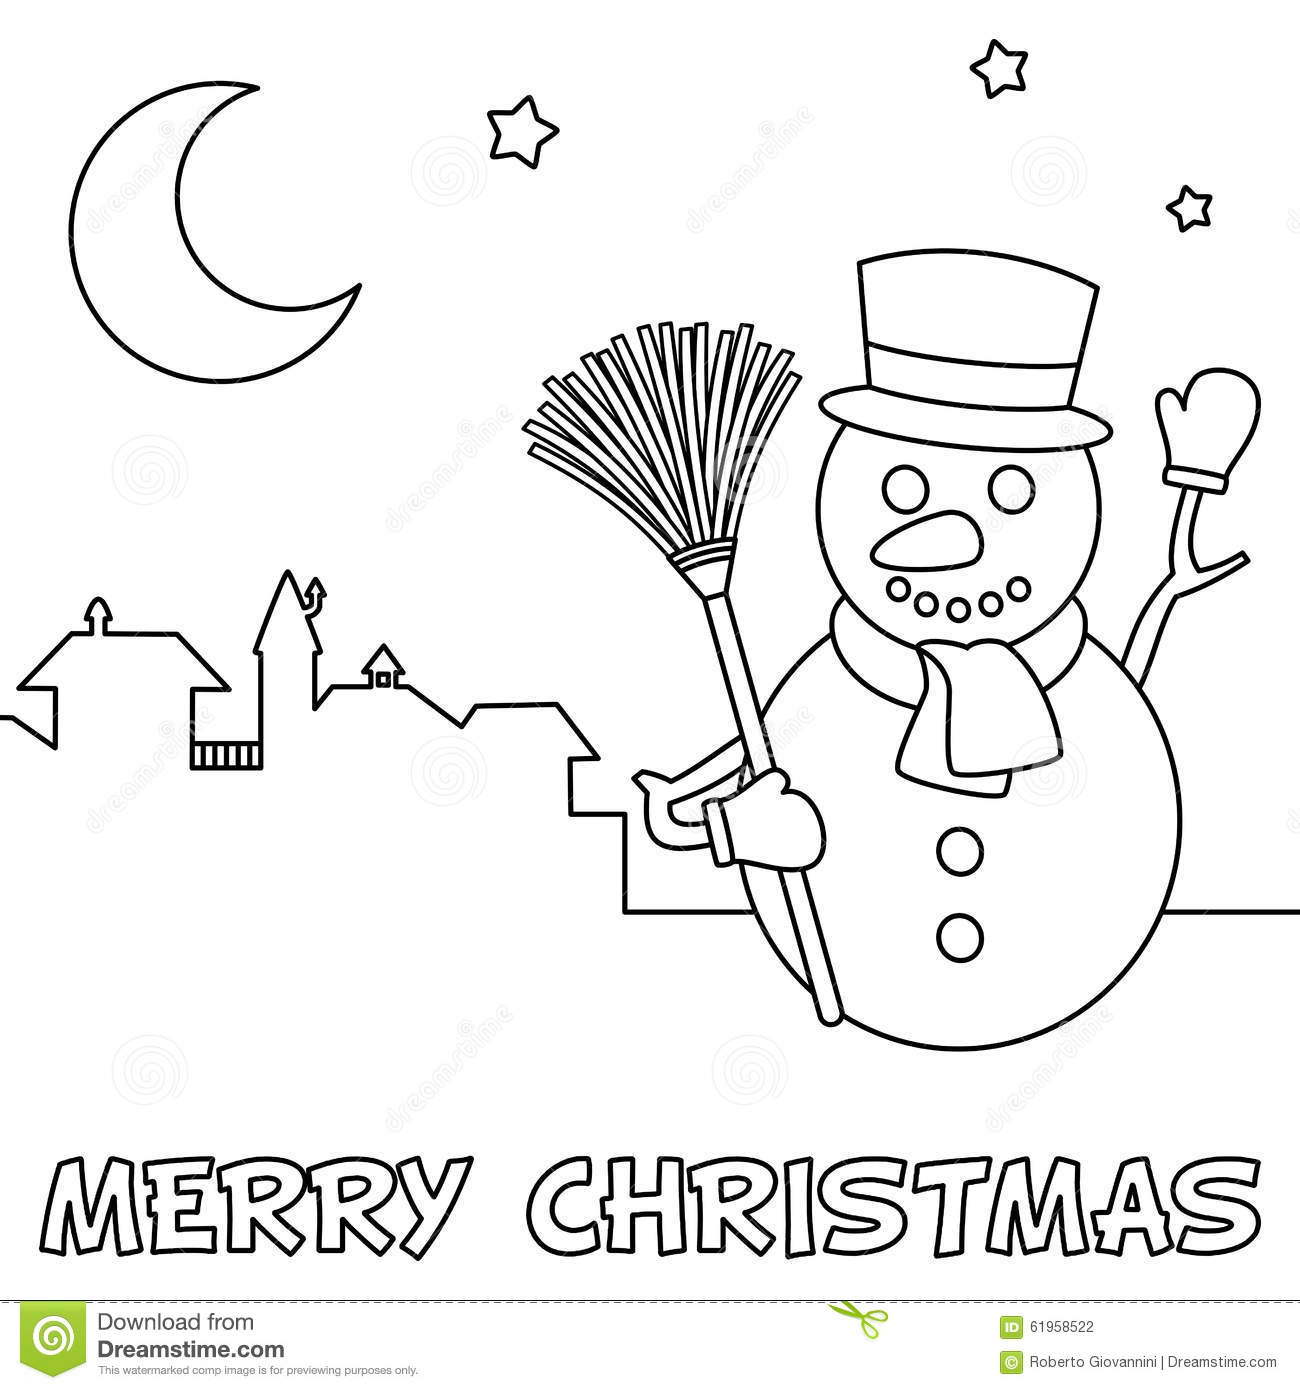 Coloring Christmas Card With Snowman Stock Vector